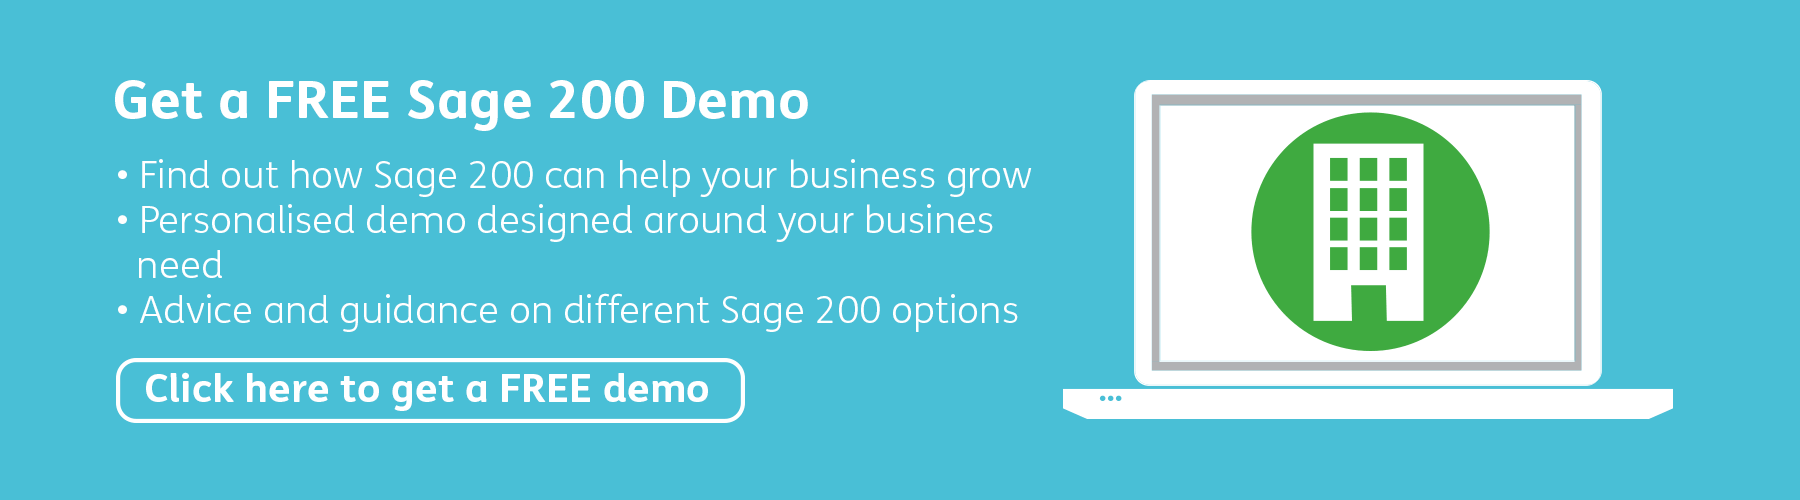 Episode Two - Using Sage 200 as a mini CRM - Sage UK